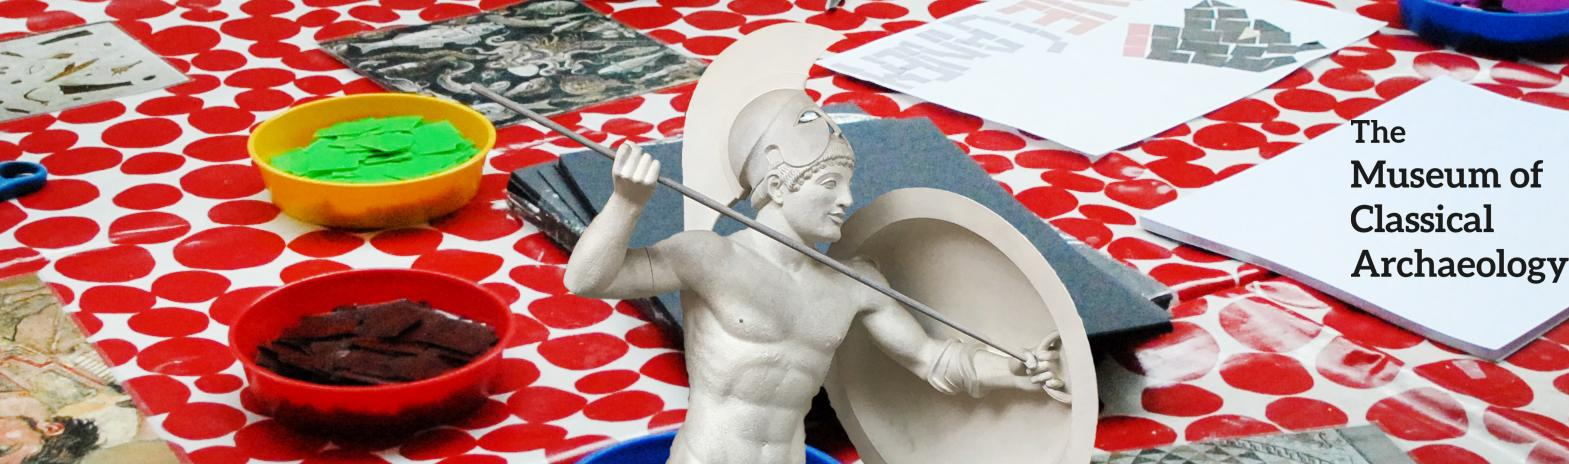 statue of Ancient Greek warrior on a red background